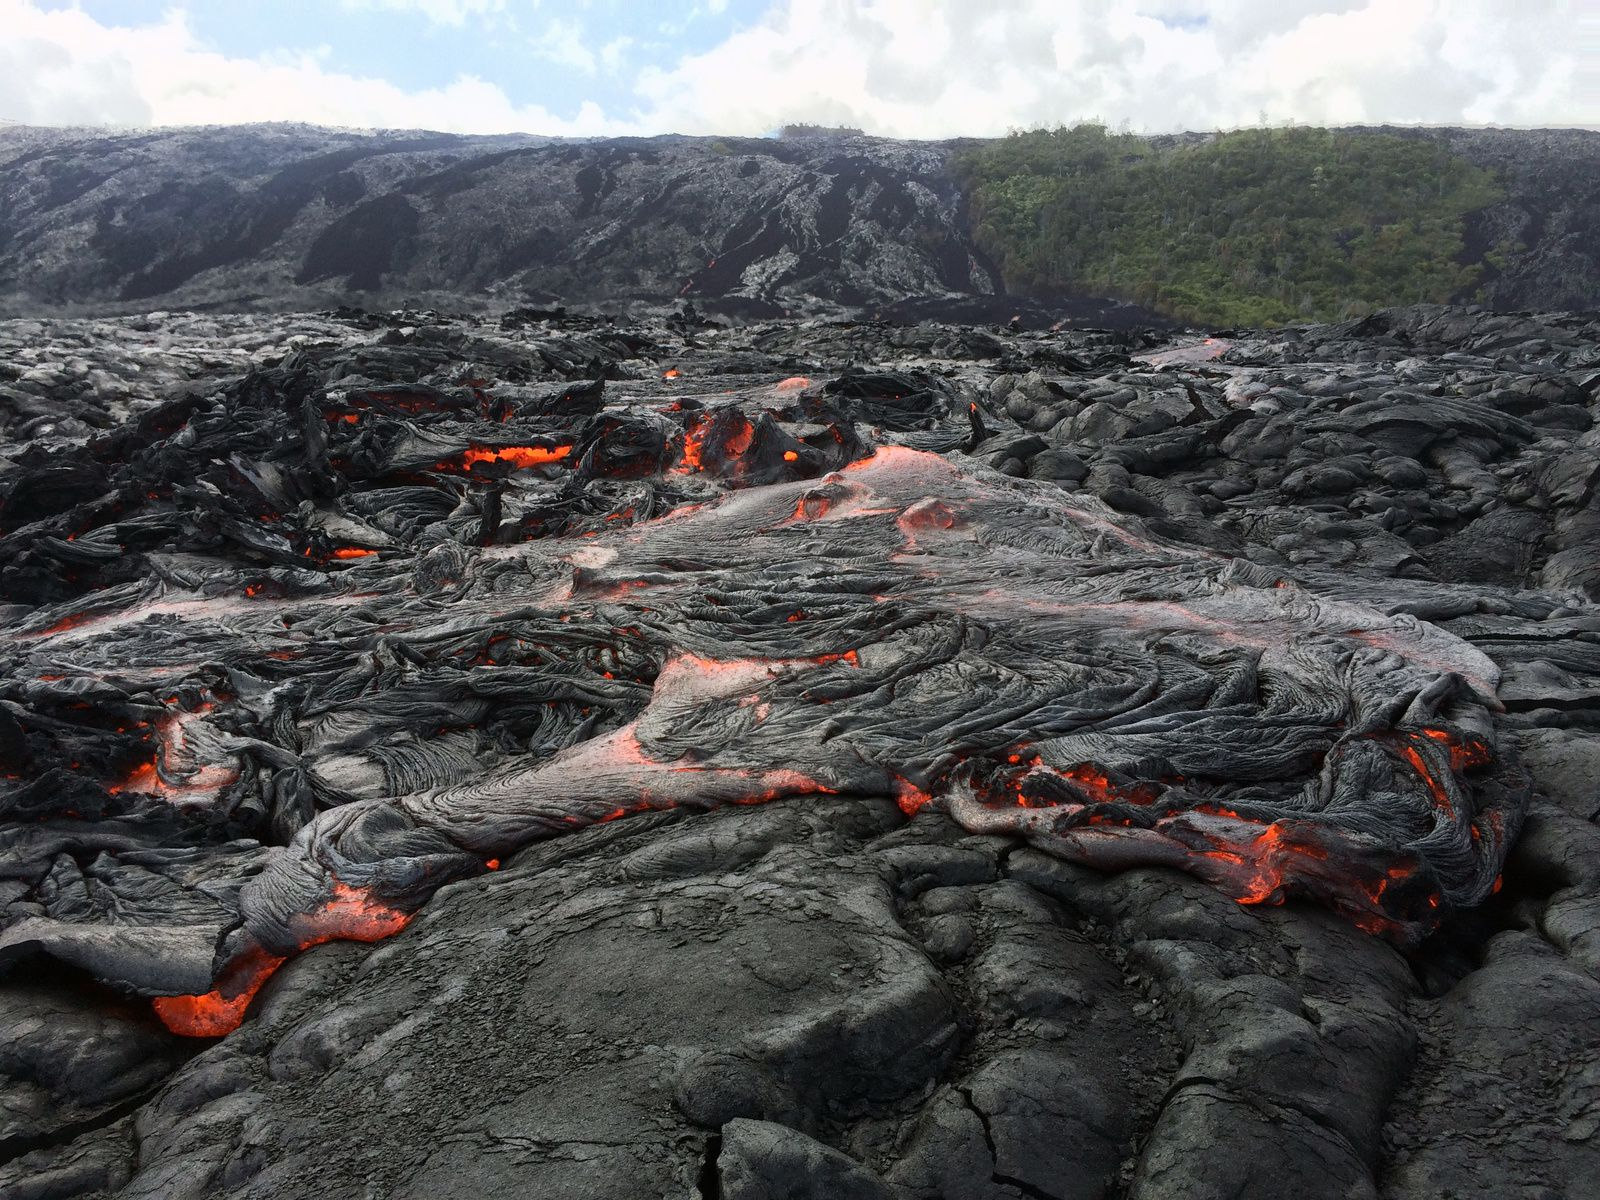 Hawaii - The flow front remains active and has begun crossing the coastal plain. This afternoon, the flow front was roughly 400 m (0.25 miles) out from the base of the pali, and was 2.9 km (1.8 miles) from the ocean. The front consisted of slabby pāhoehoe, though ʻaʻā was also active at the base of the pali. - photo HVo